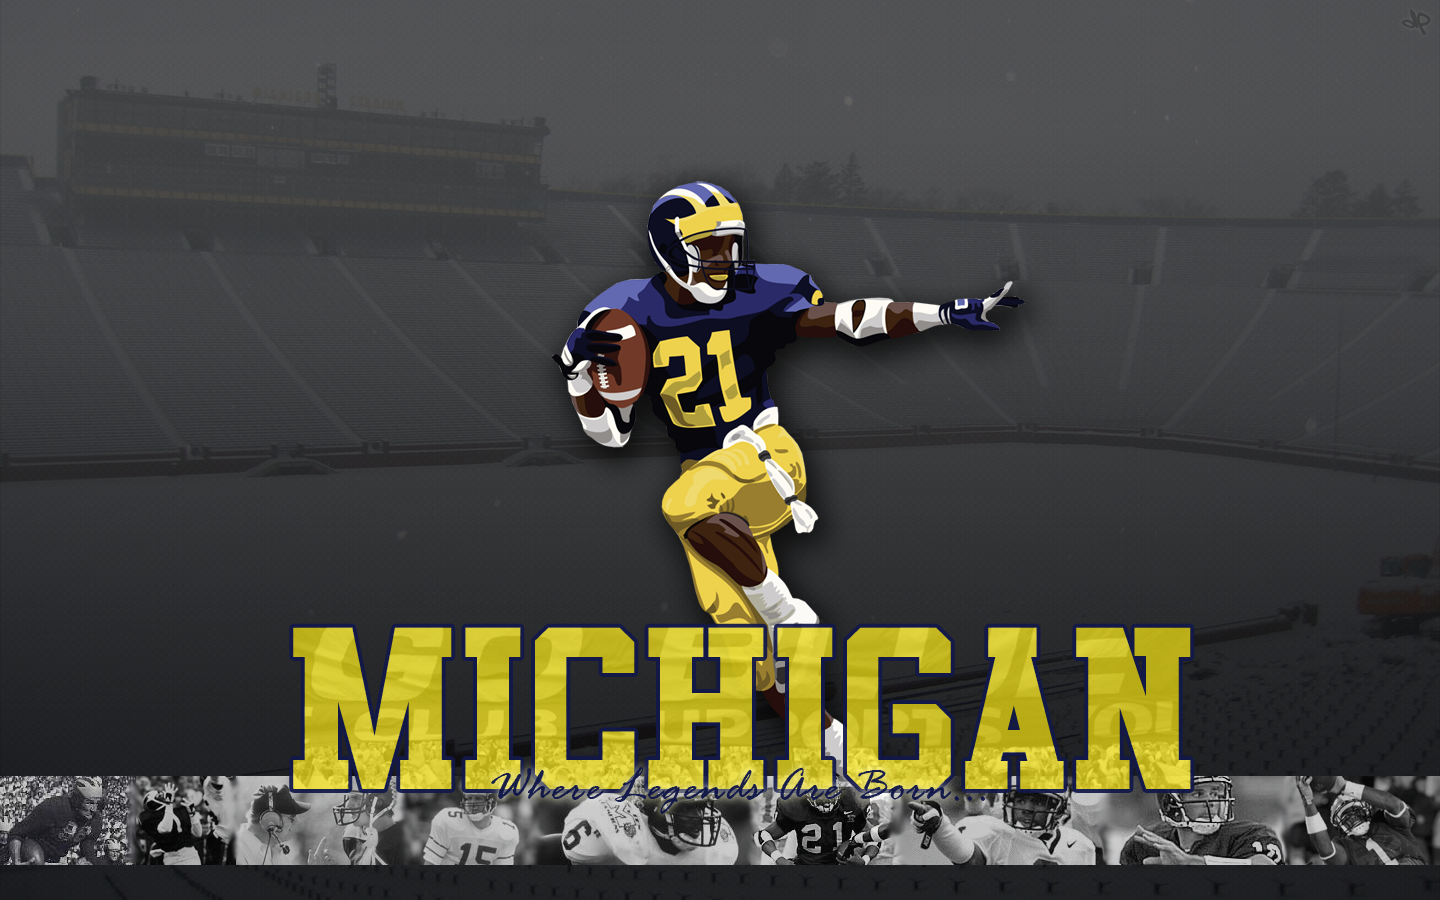 Michigan wallpaper 1440x900 5484 1440x900